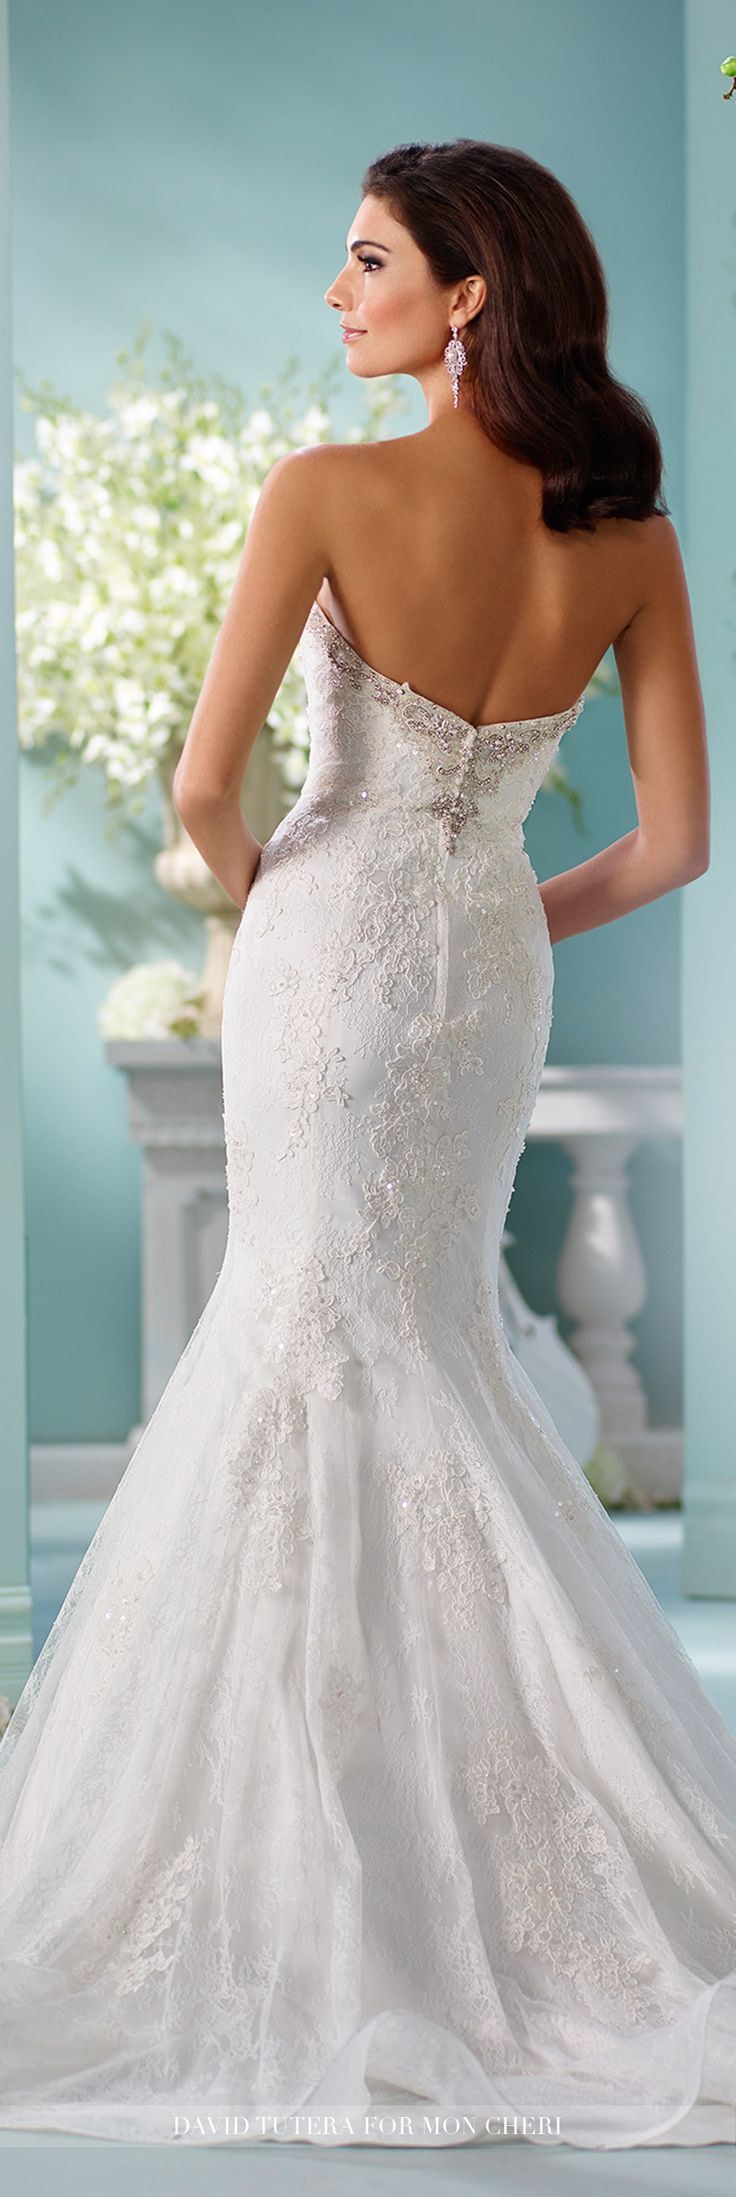 216 best images about david tutera for mon cheri on for How much are mon cheri wedding dresses